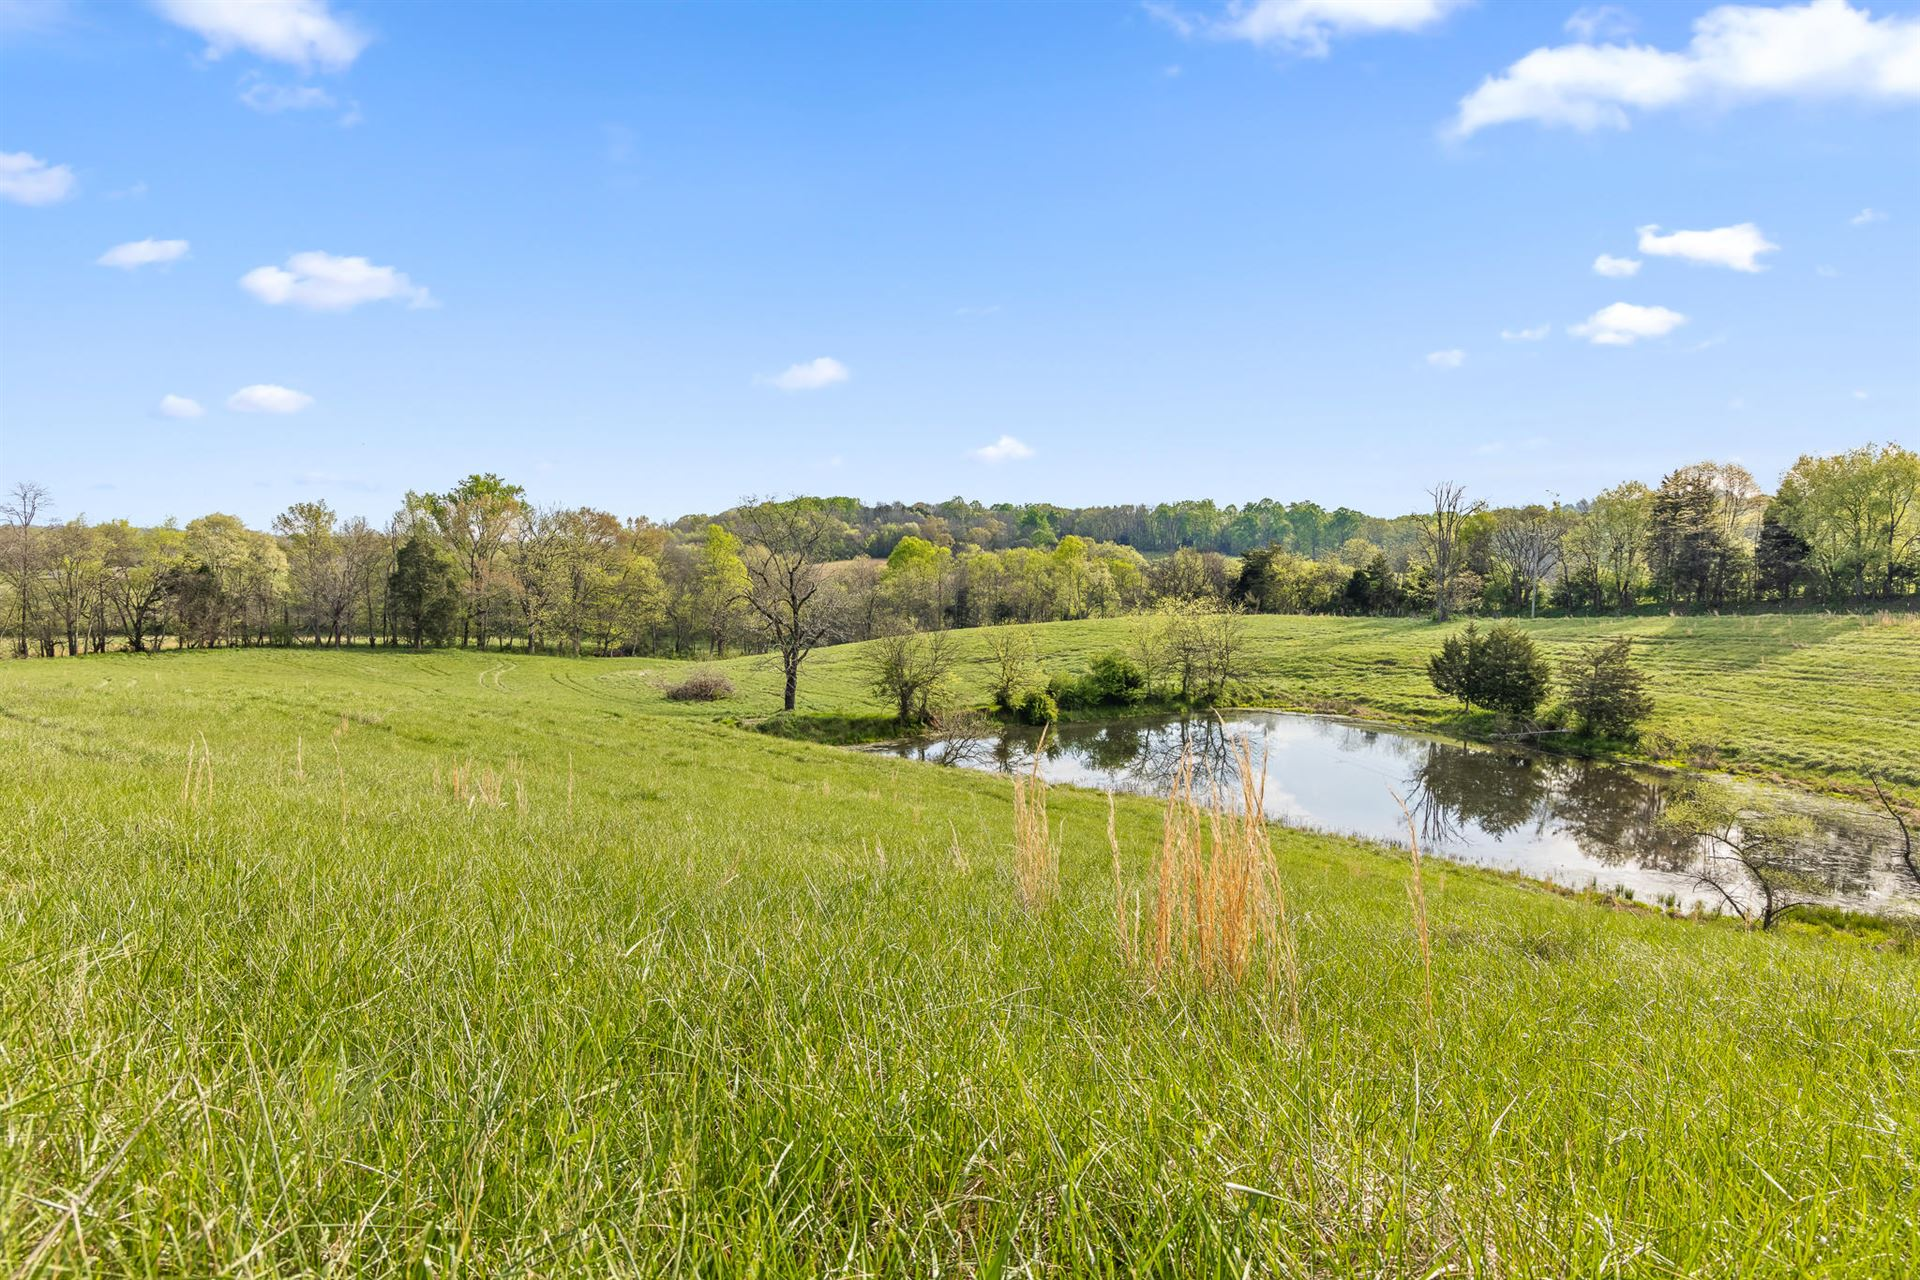 Photo for 0 Sands Rd, Sweetwater, TN 37874 (MLS # 1334340)